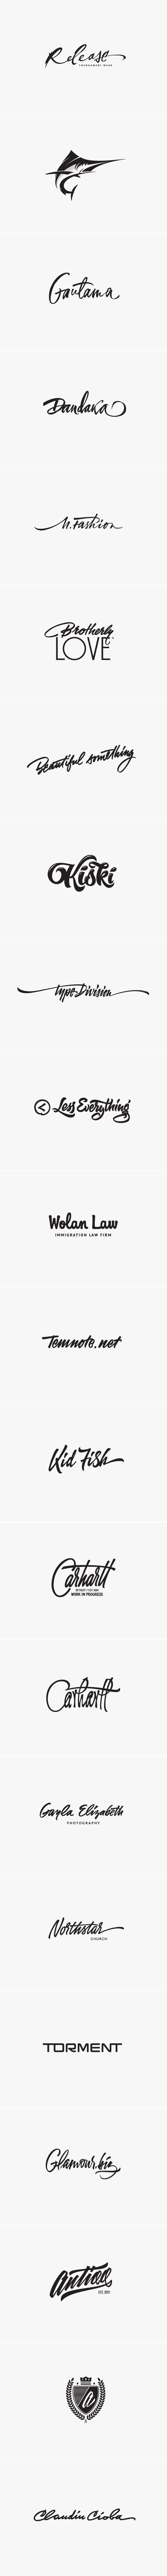 Logo set 1 on Behance